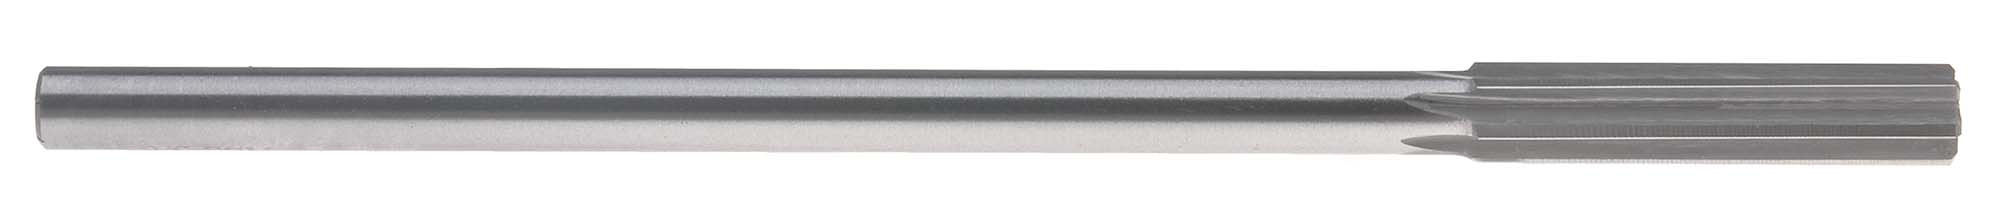 55/64 Straight Shank Chucking Reamer, Straight Flute, High Speed Steel